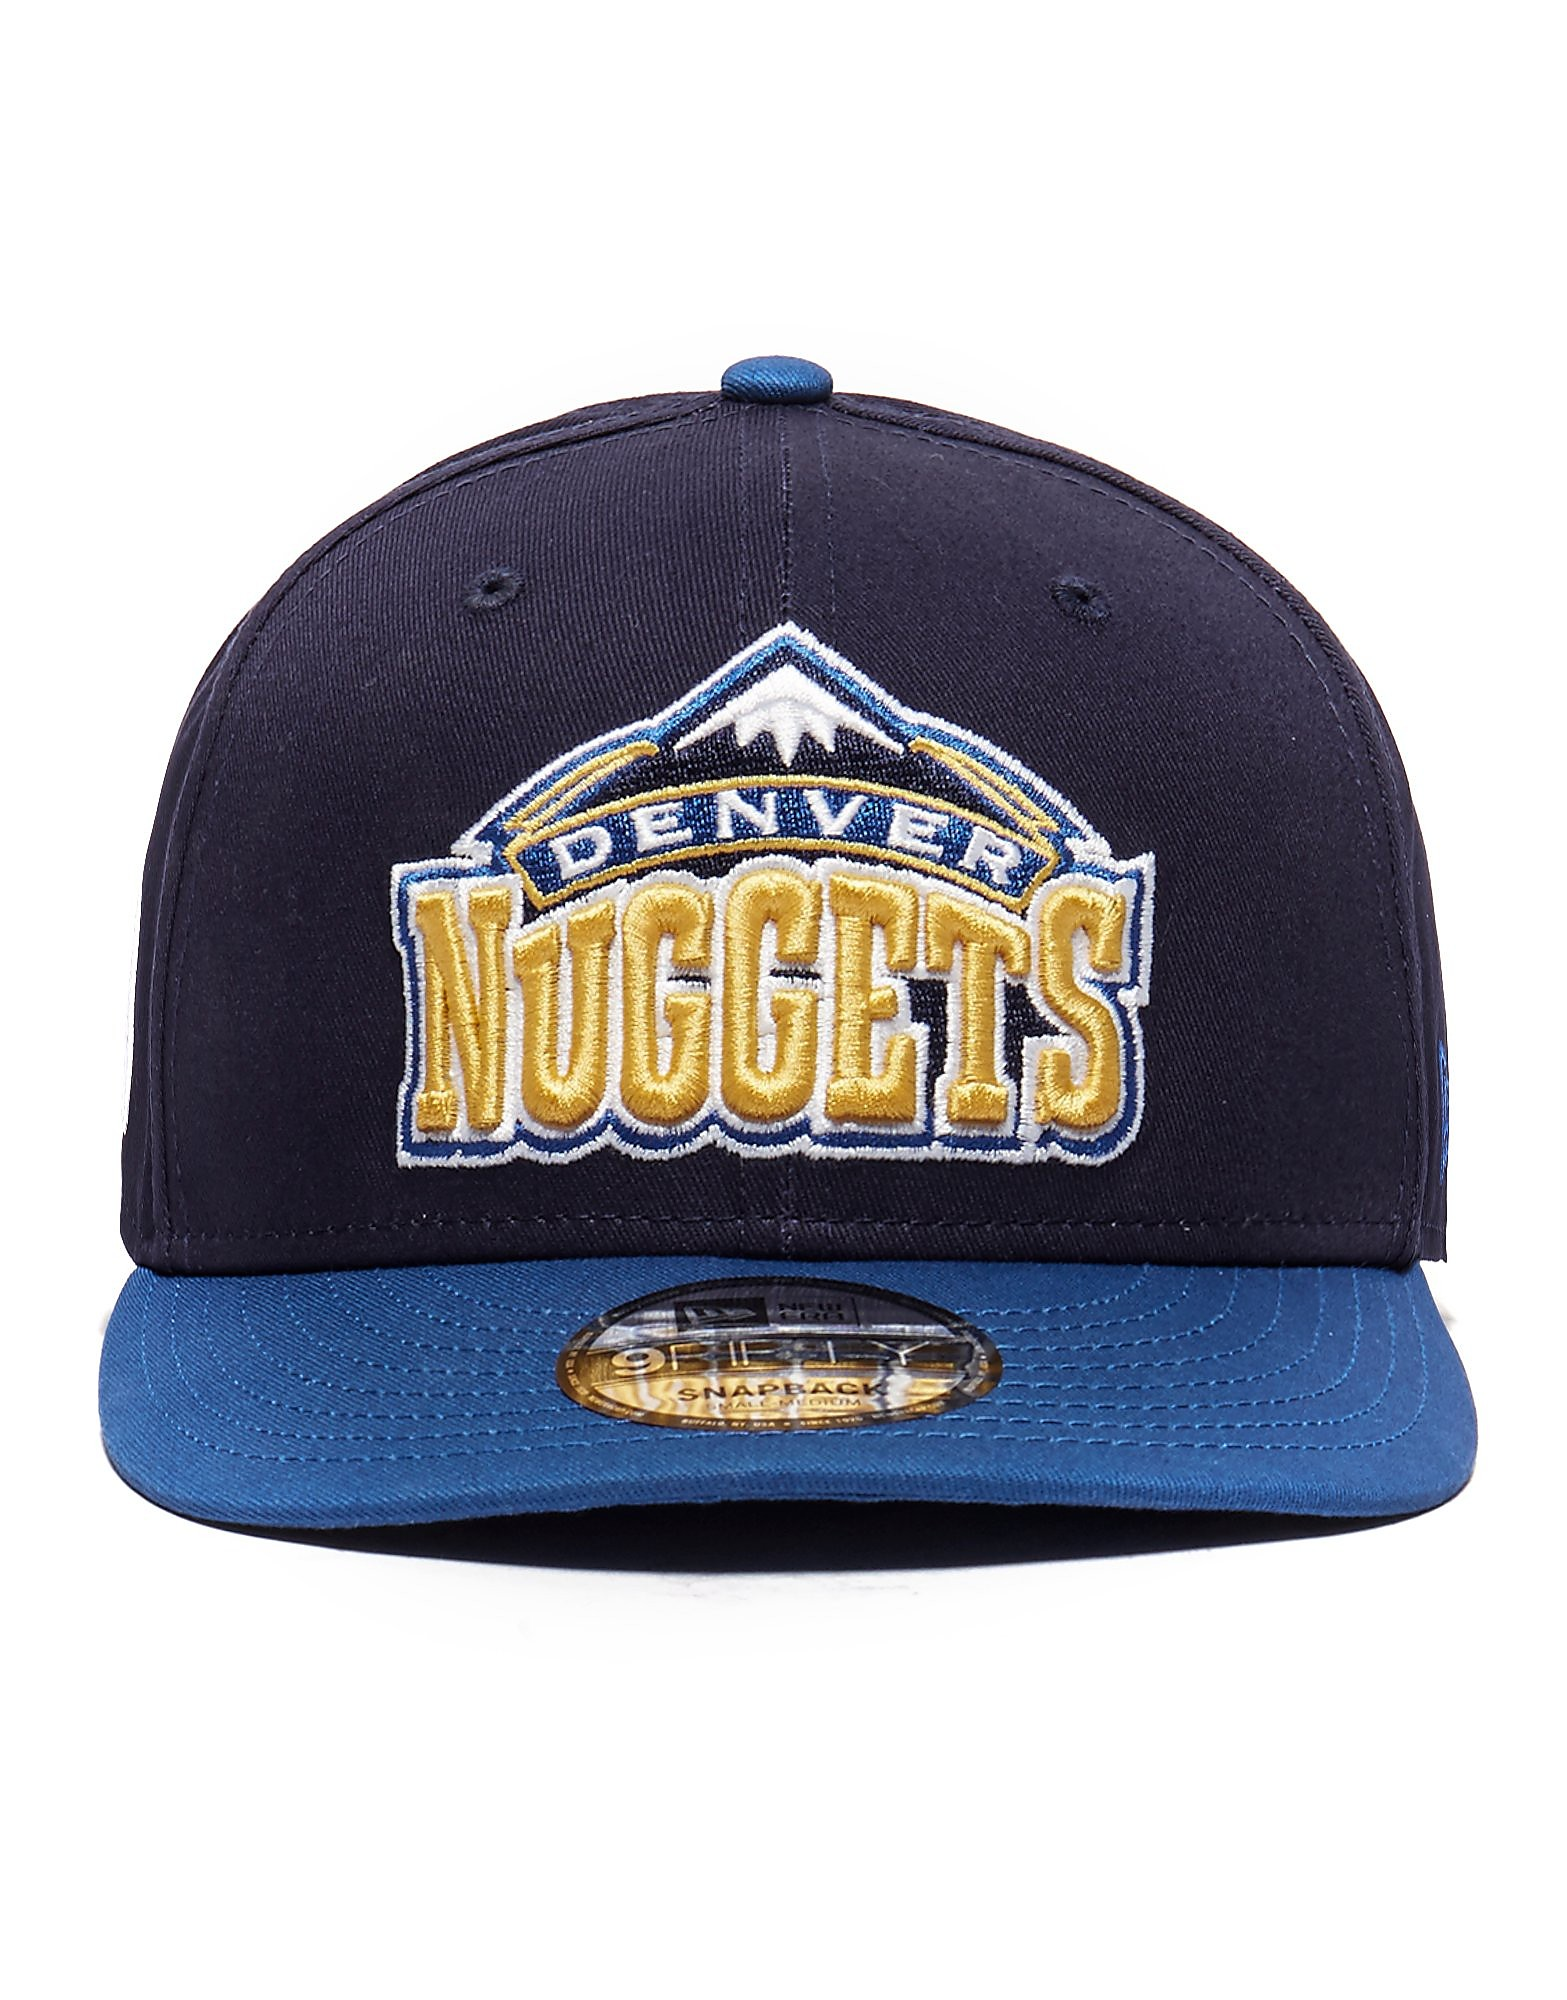 New Era NBA Denver Nuggets 9FIFTY Cap